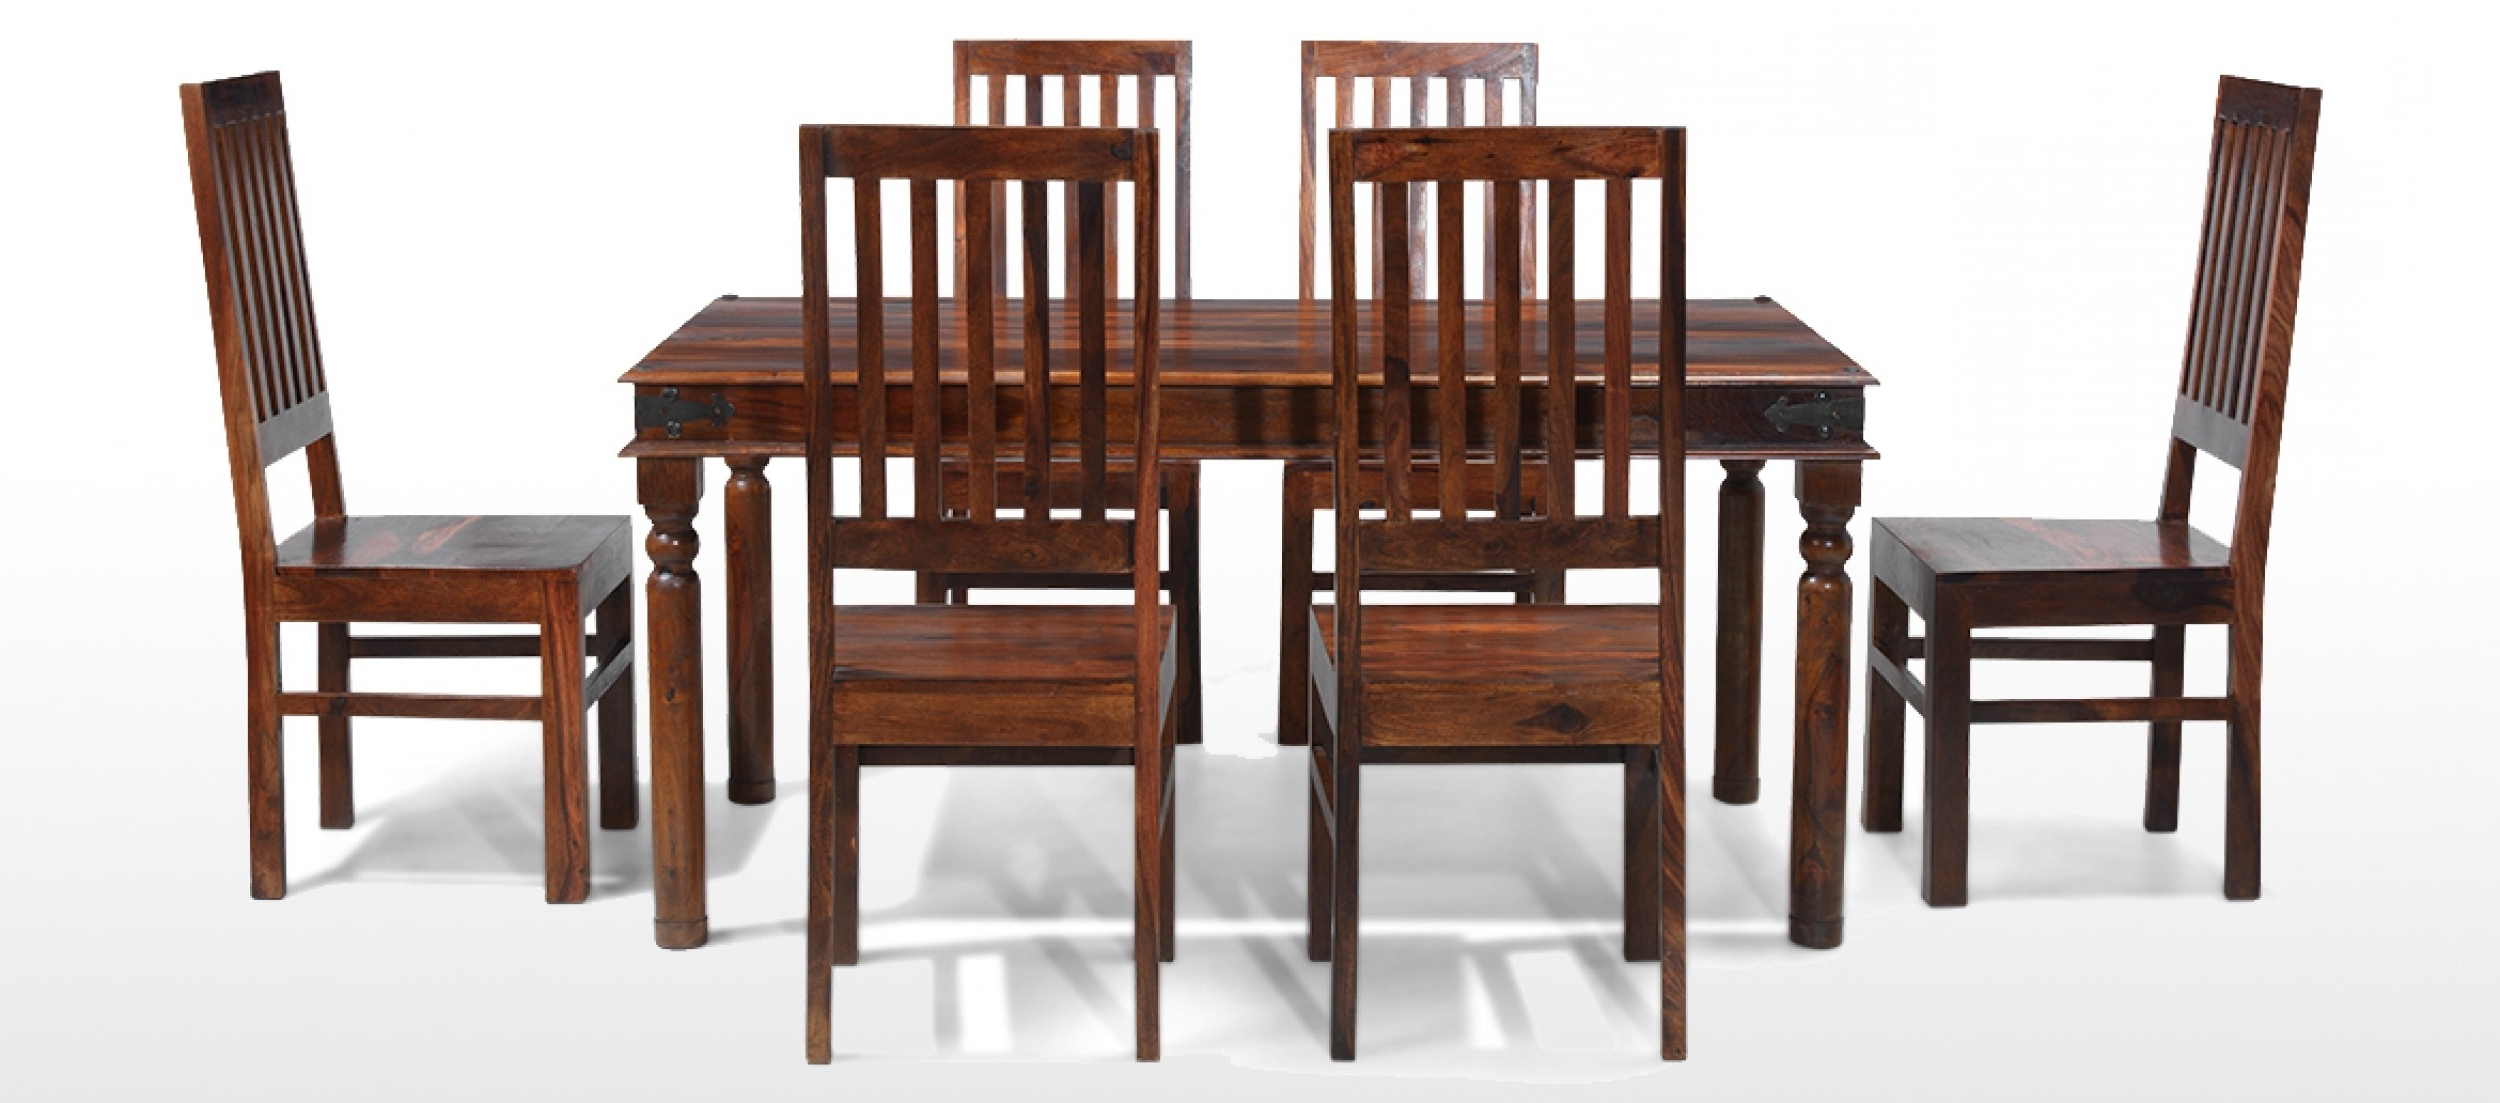 6 Chair Dining Table Sets Within 2017 Jali Sheesham 160 Cm Thakat Dining Table And 6 Chairs (Gallery 10 of 25)